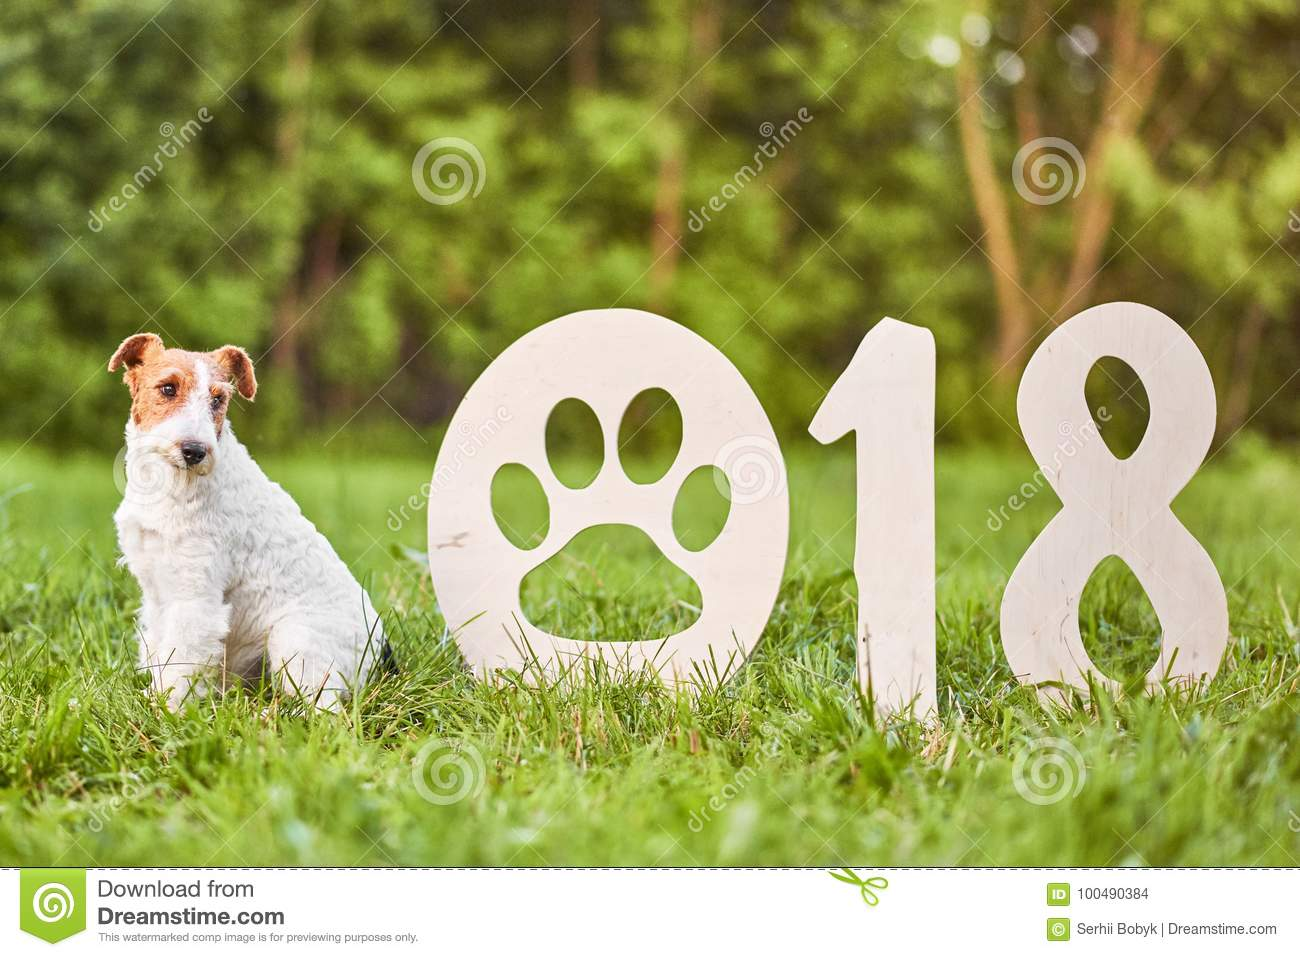 Adorable happy fox terrier dog at the park 2018 new year greetin